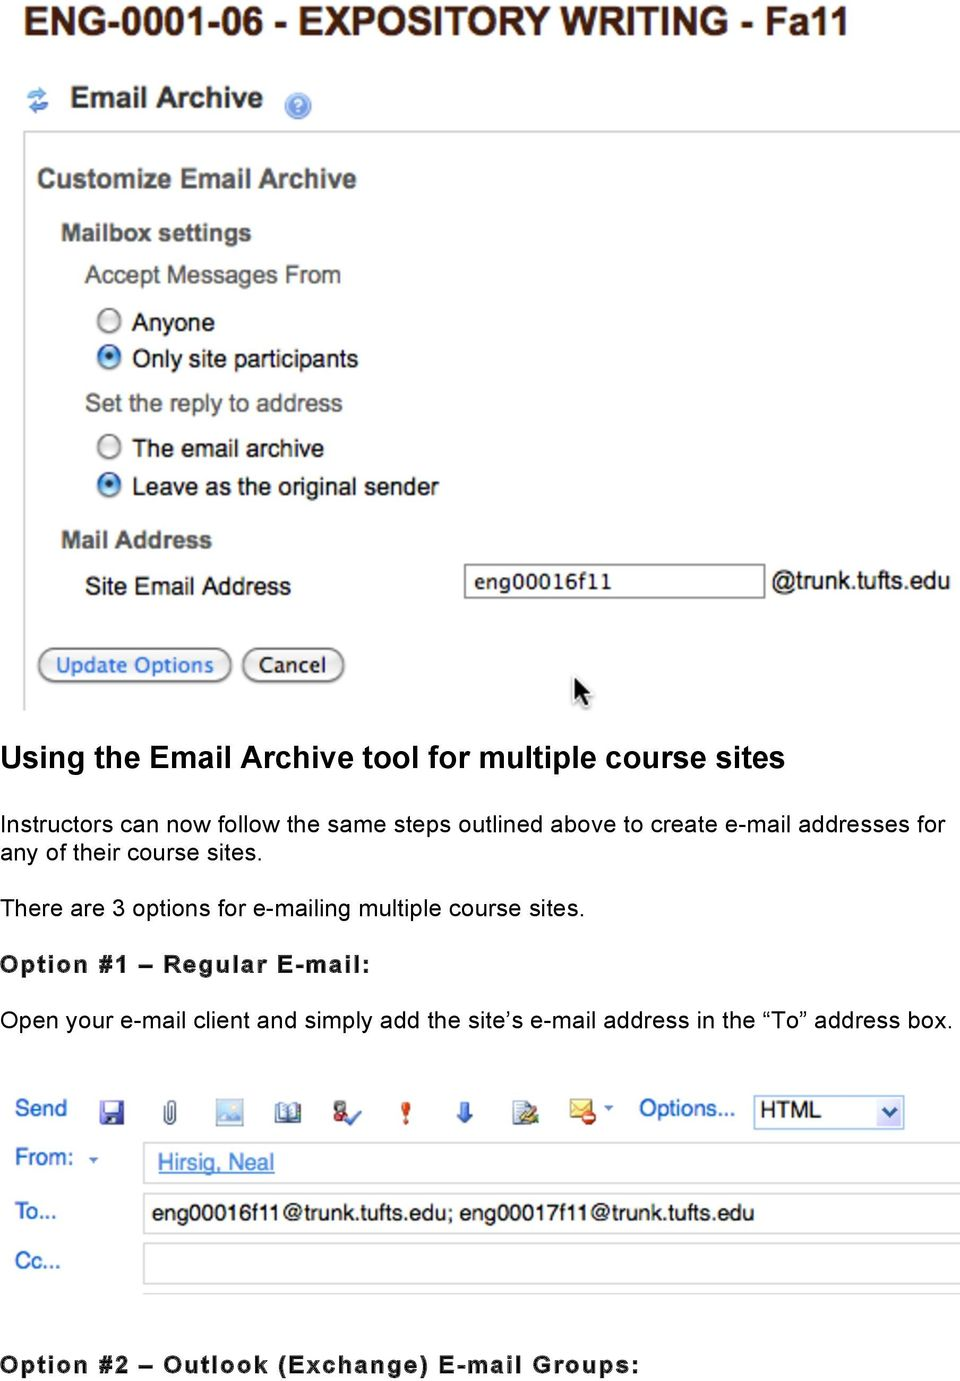 There are 3 options for e-mailing multiple course sites.